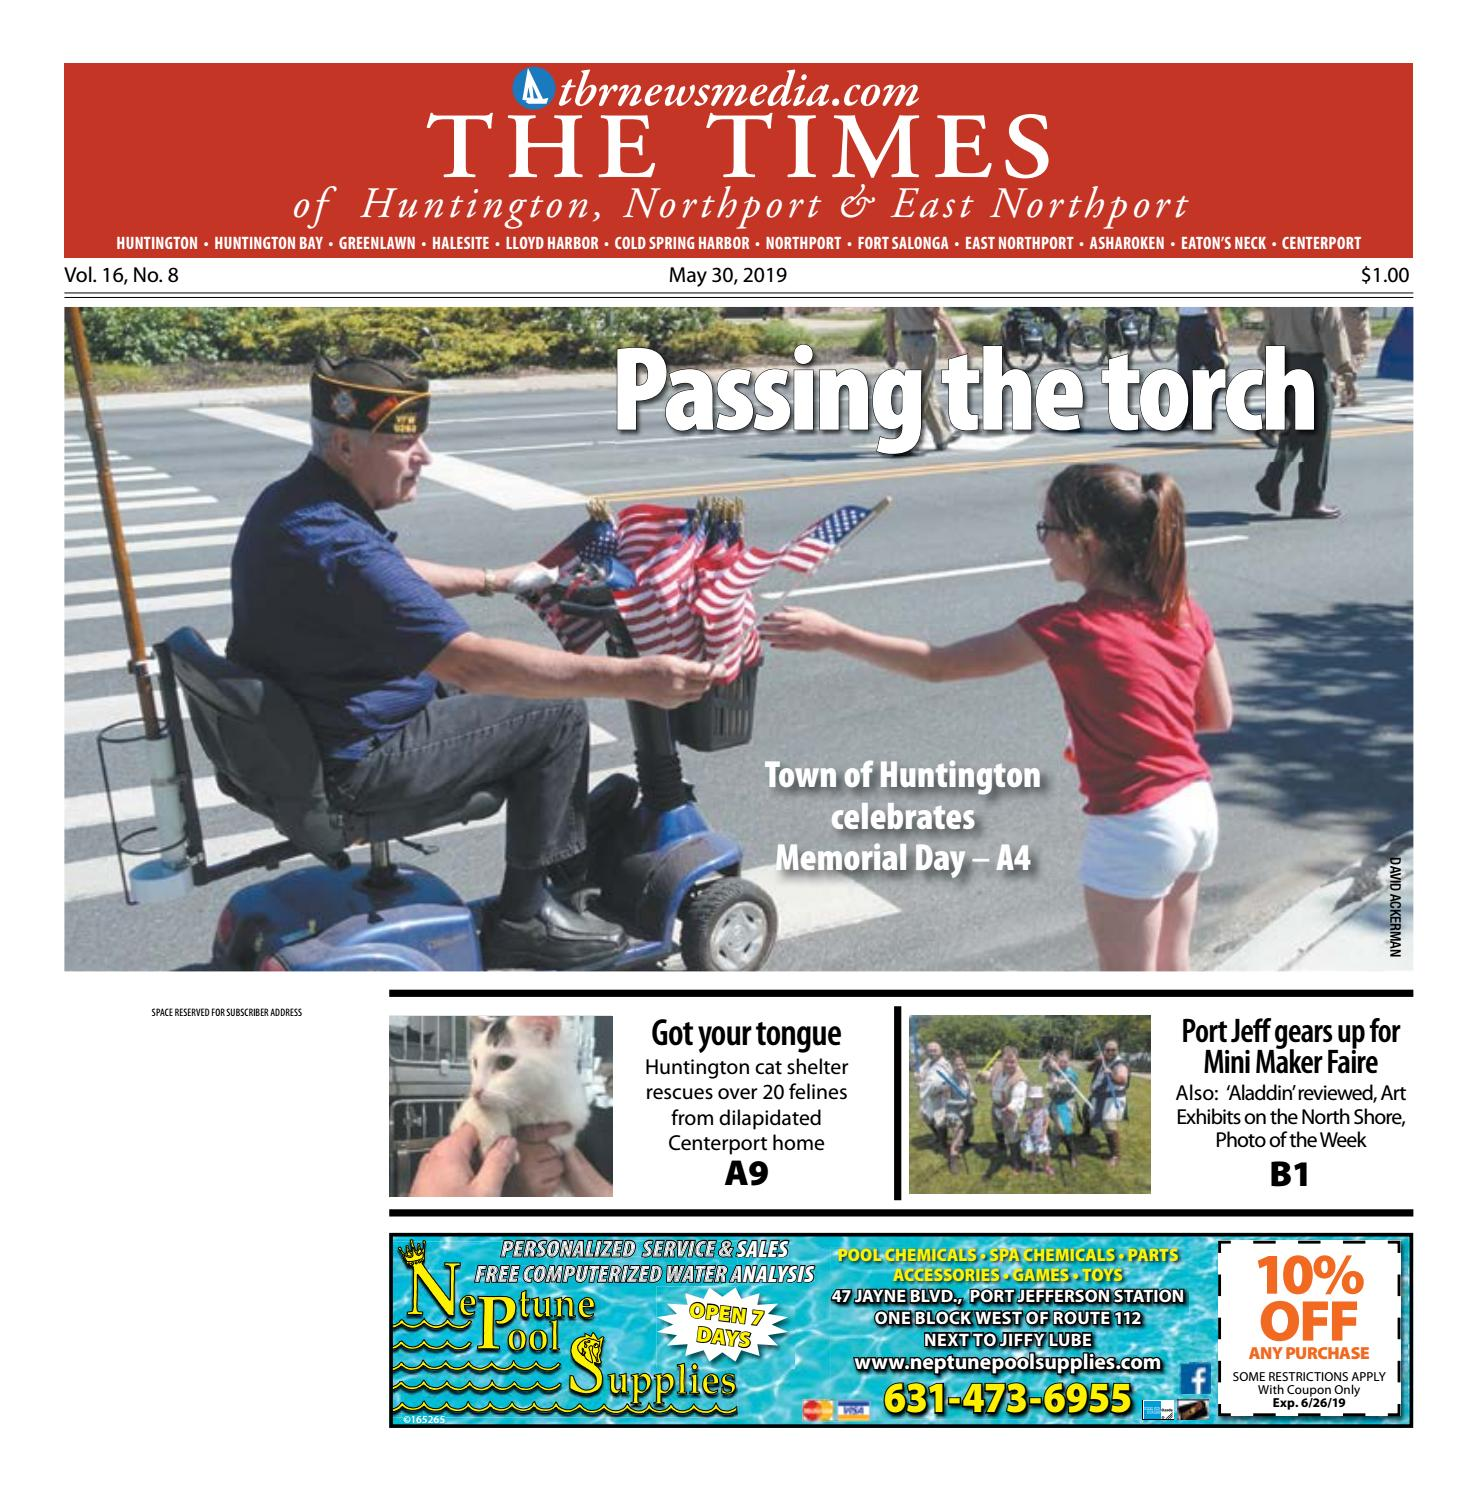 The Times of Huntington-Northport - May 30, 2019 by TBR News